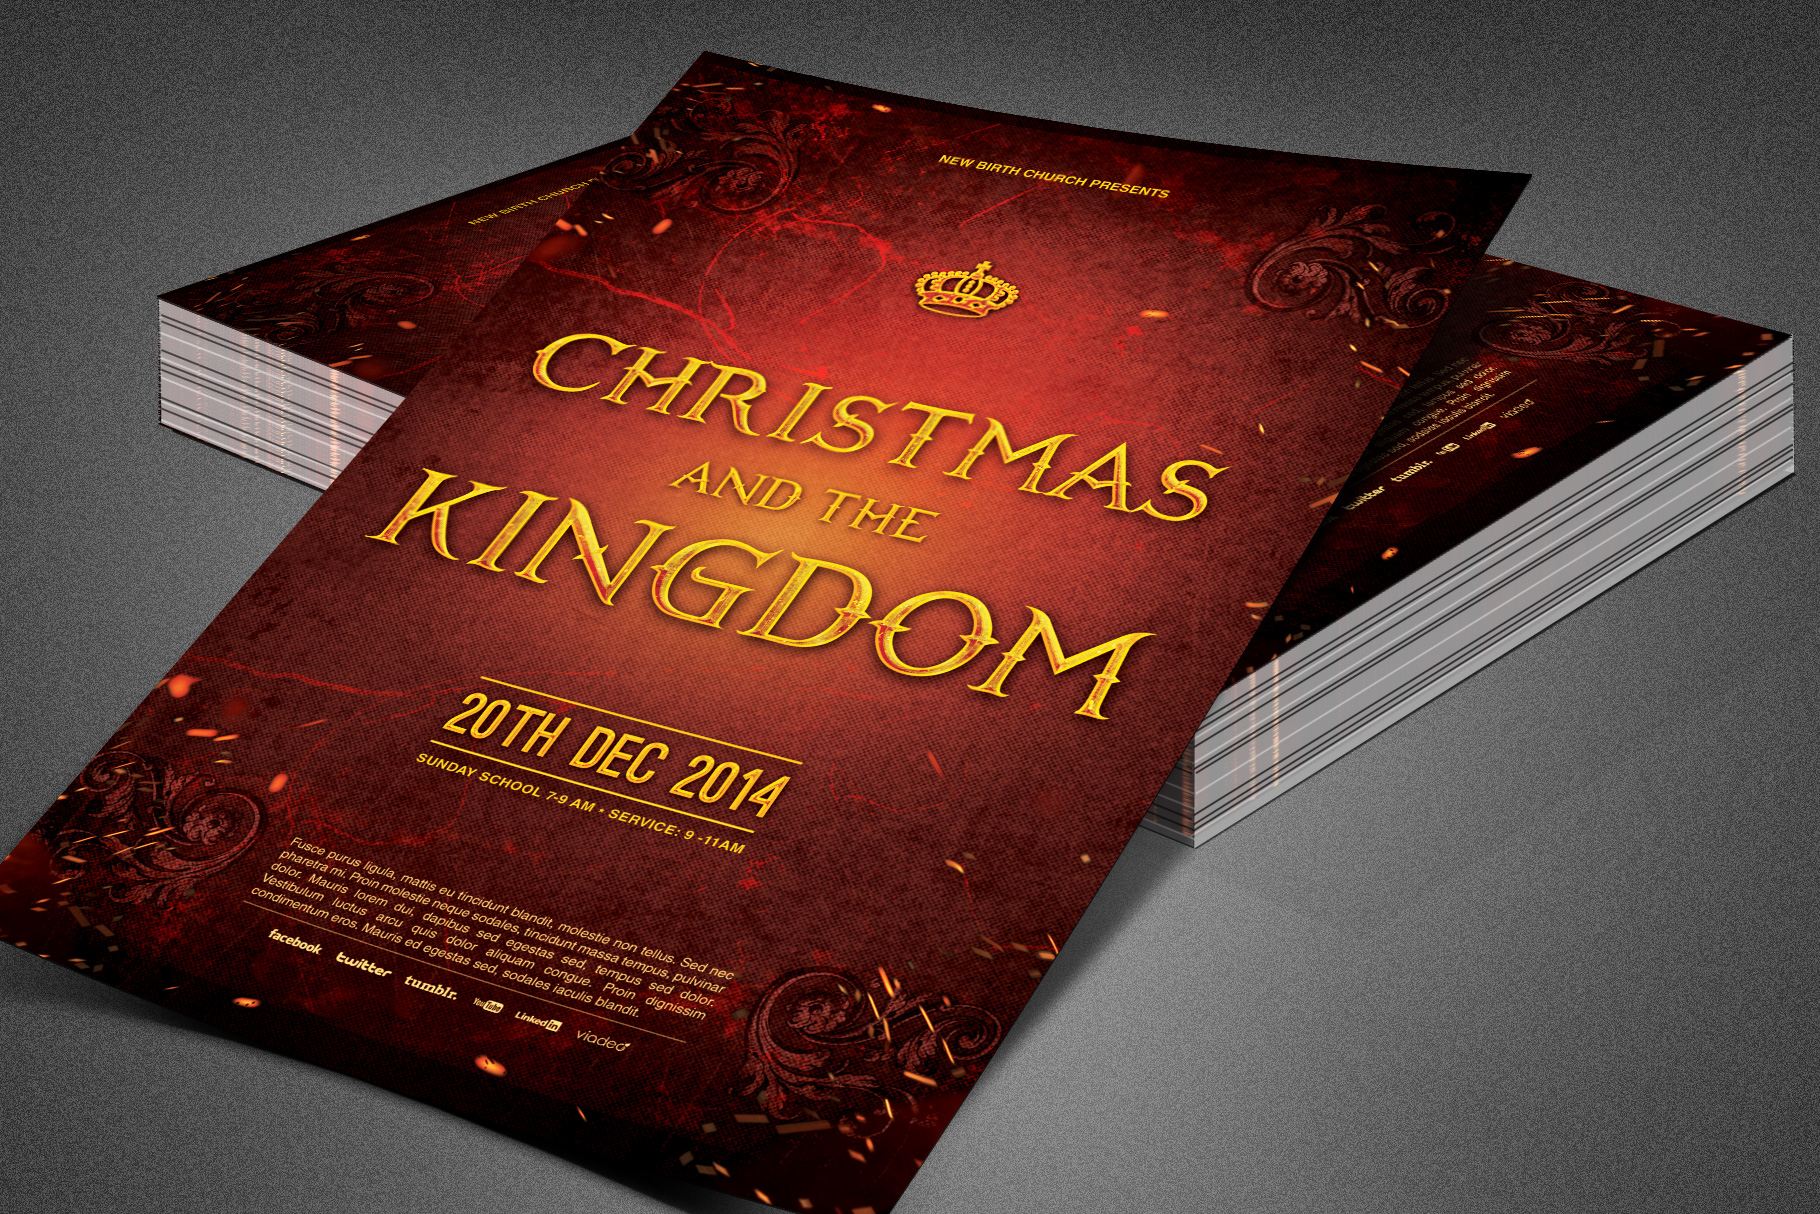 Christmas and the Kingdom Flyer example image 1